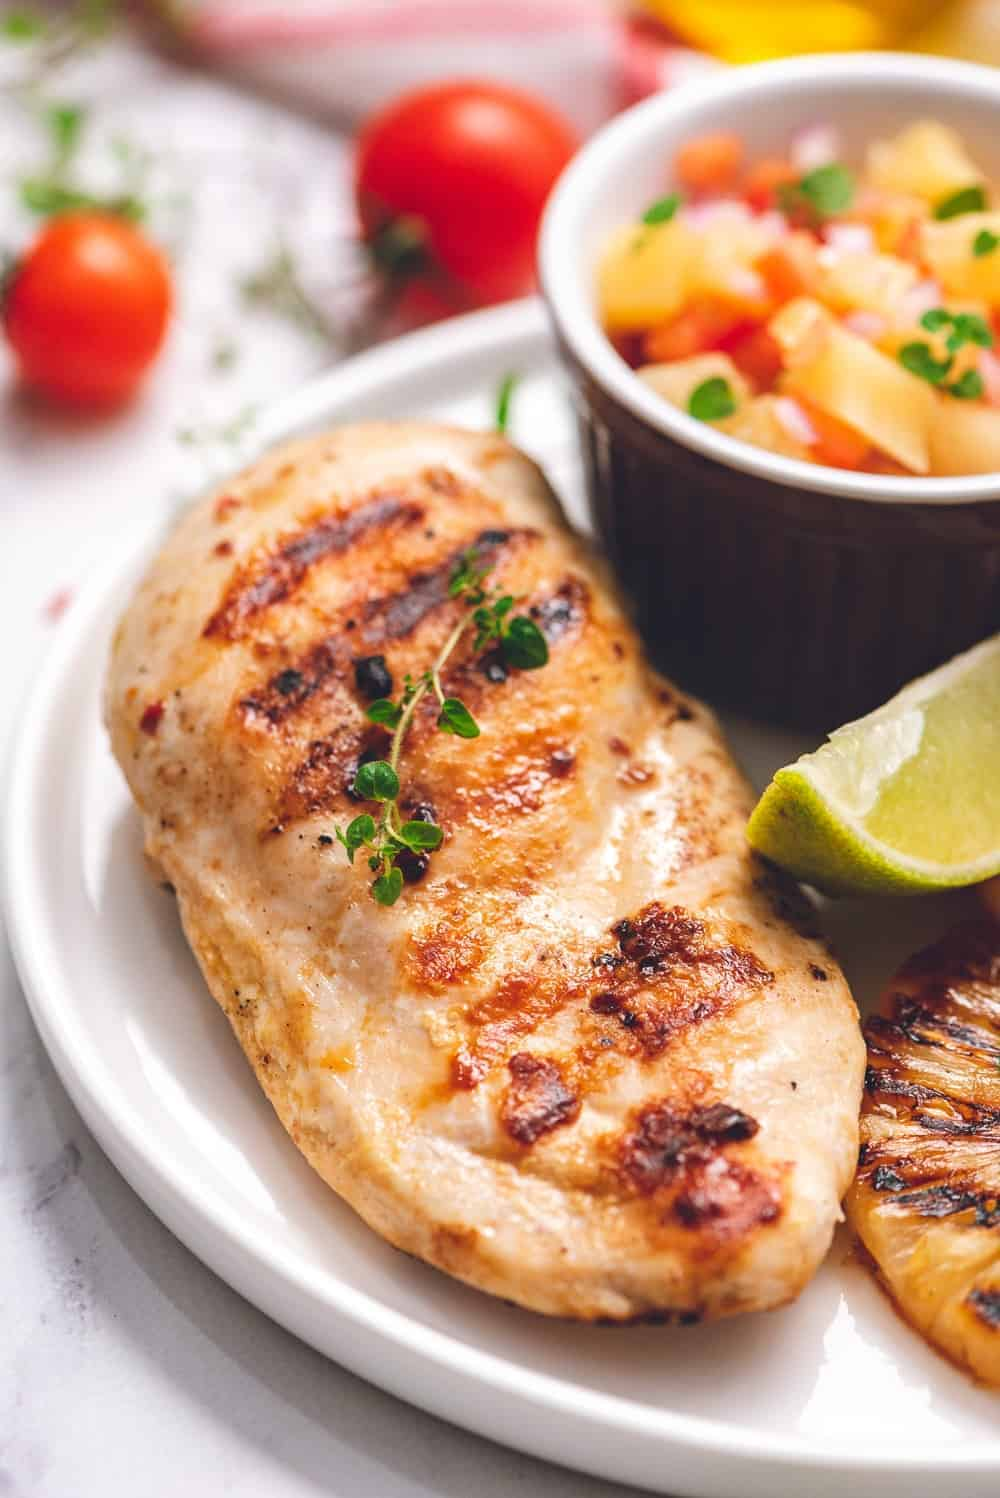 up close image of grilled chicken breast